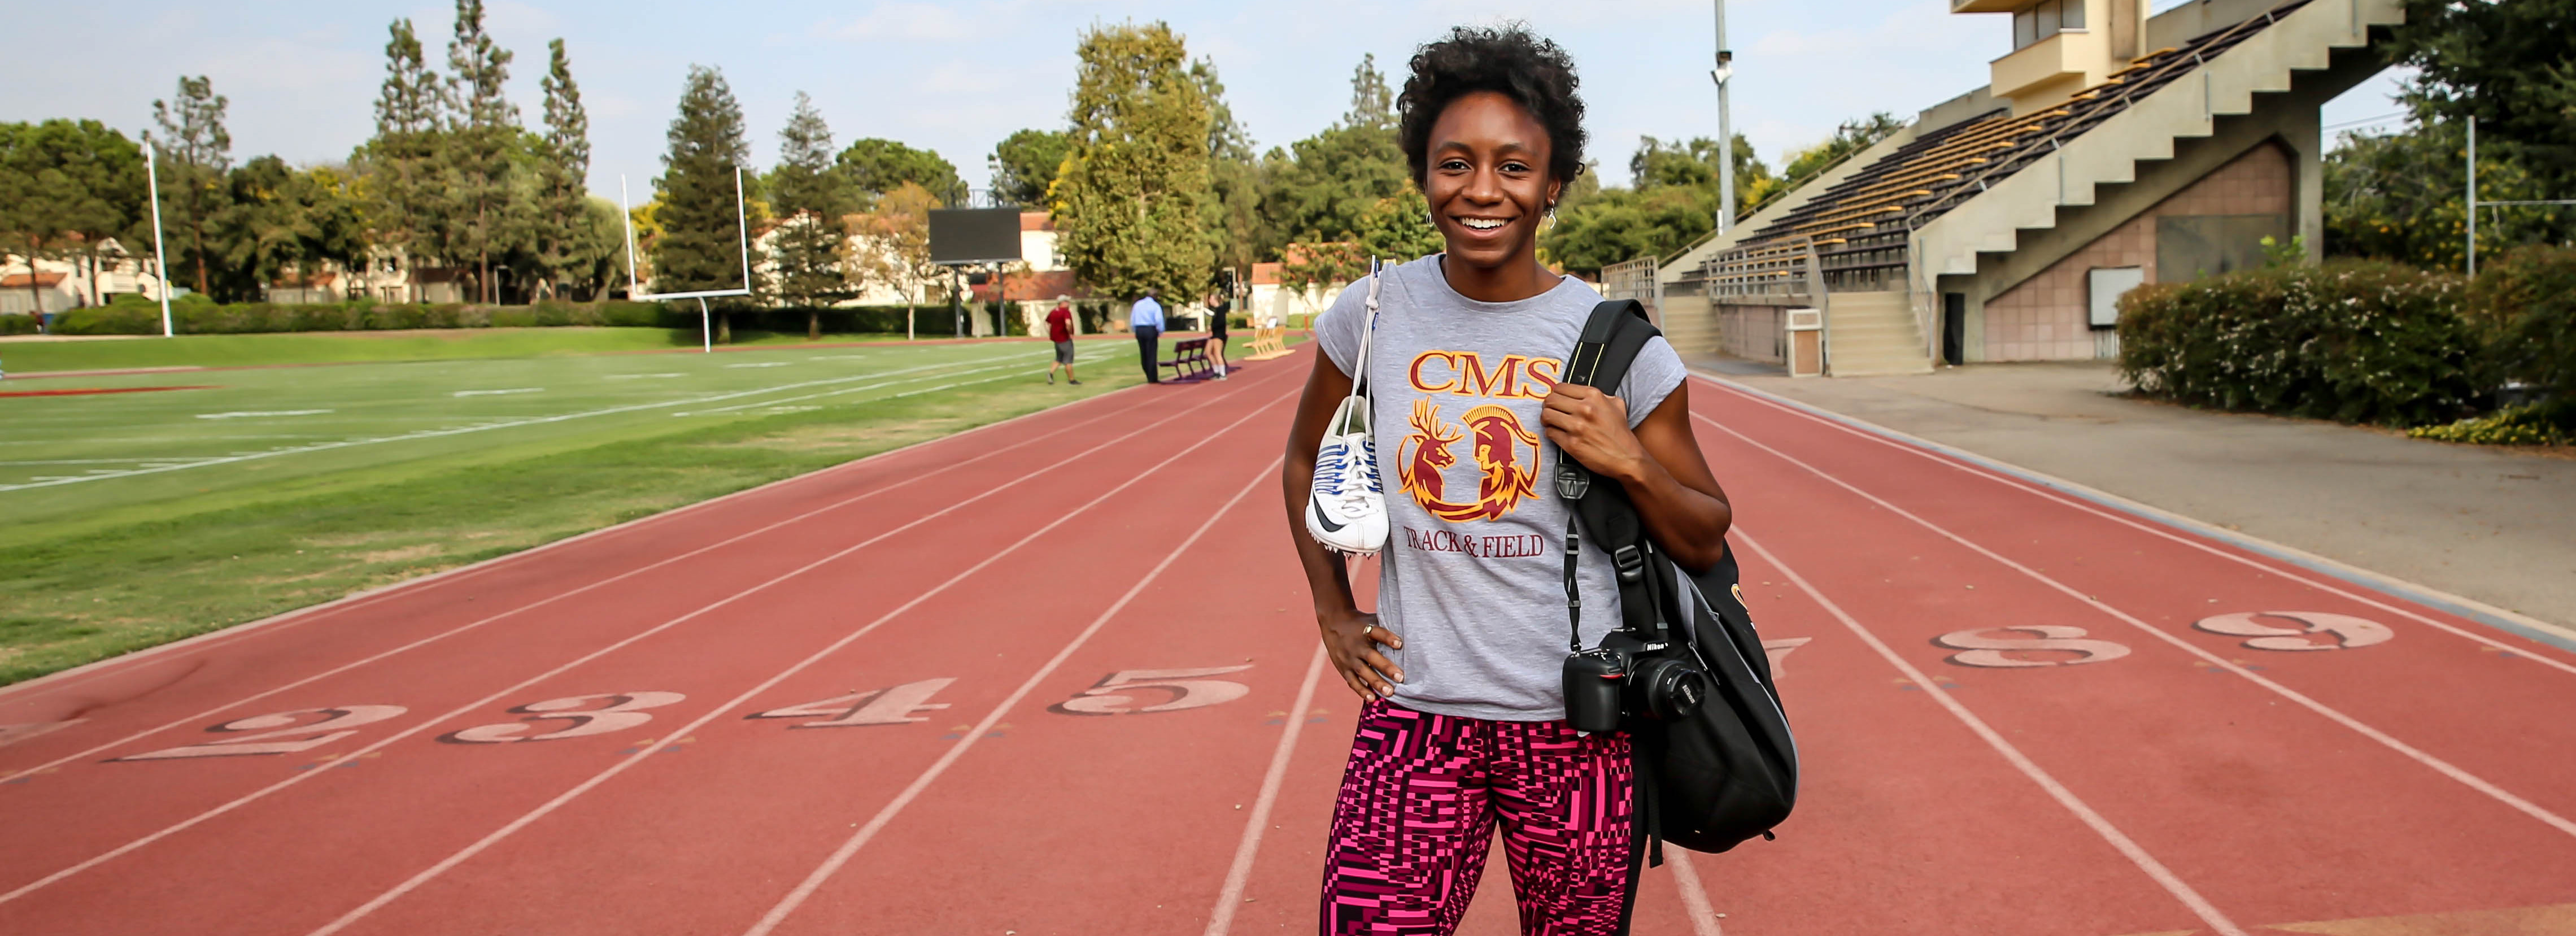 Spotlight on Students: Tyra Abraham '18, Scripps Senior Is Running with Her Passion for Storytelling